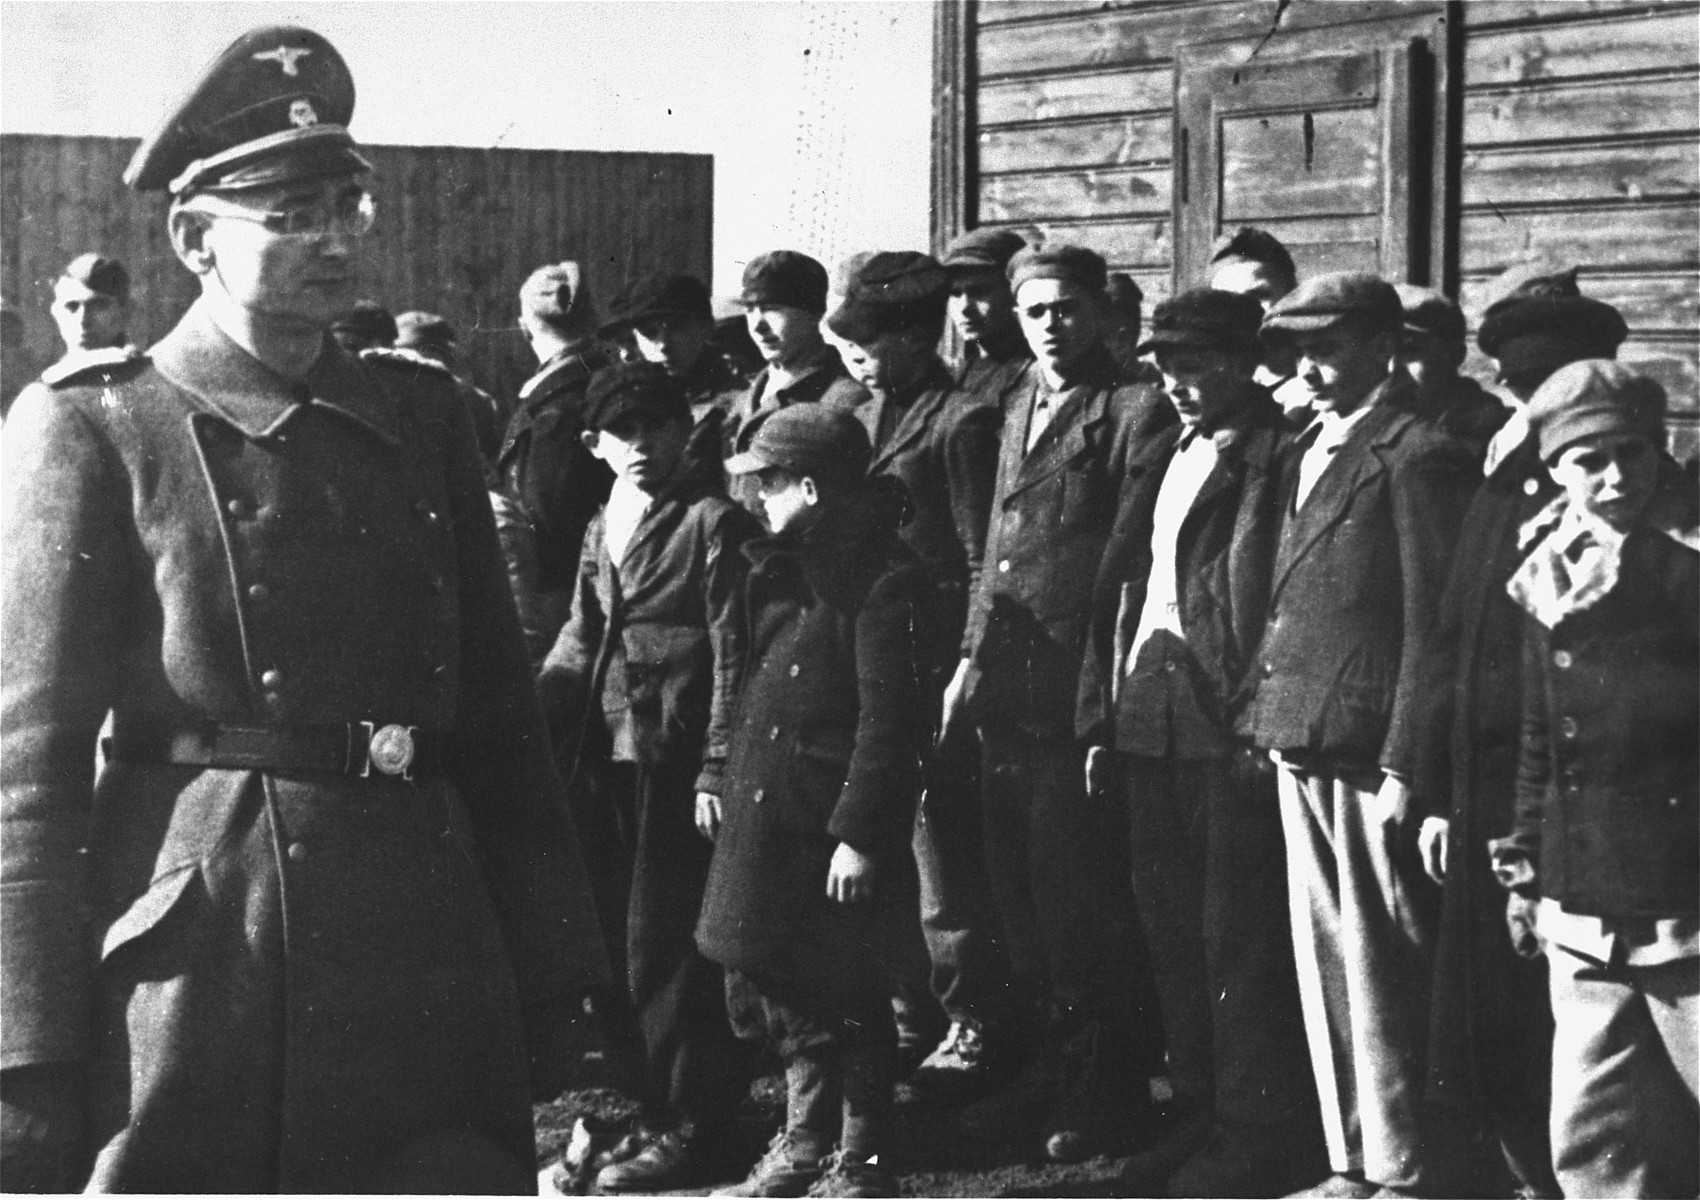 Camp commandant Karl Ehrlich reviews the child prisoners at his camp.